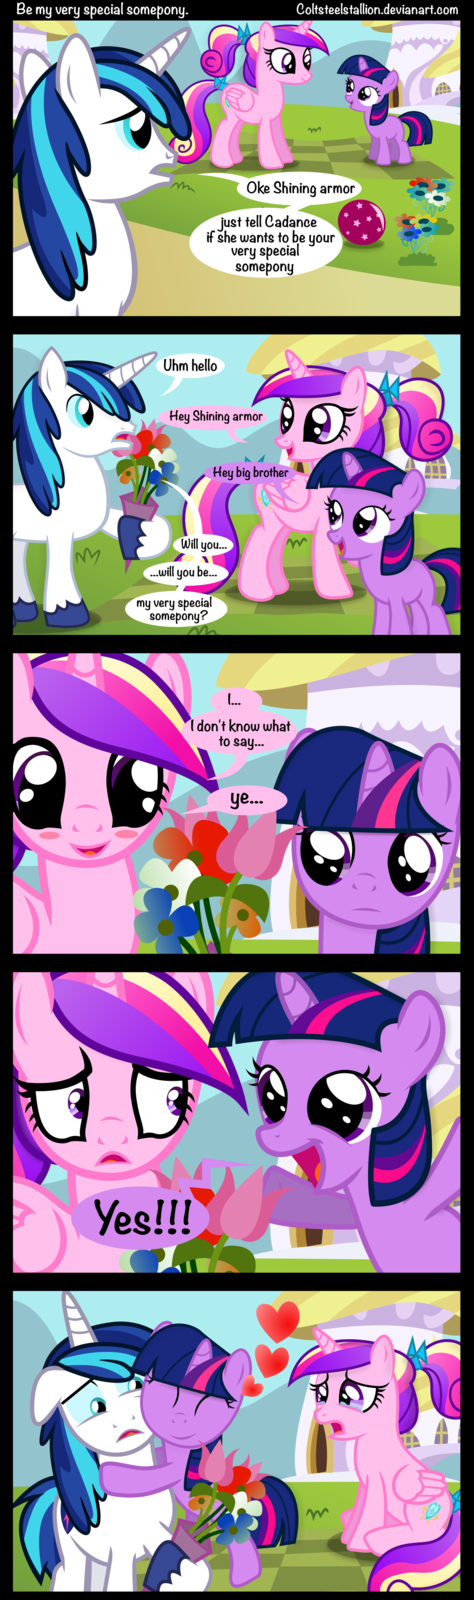 Be my very special somepony